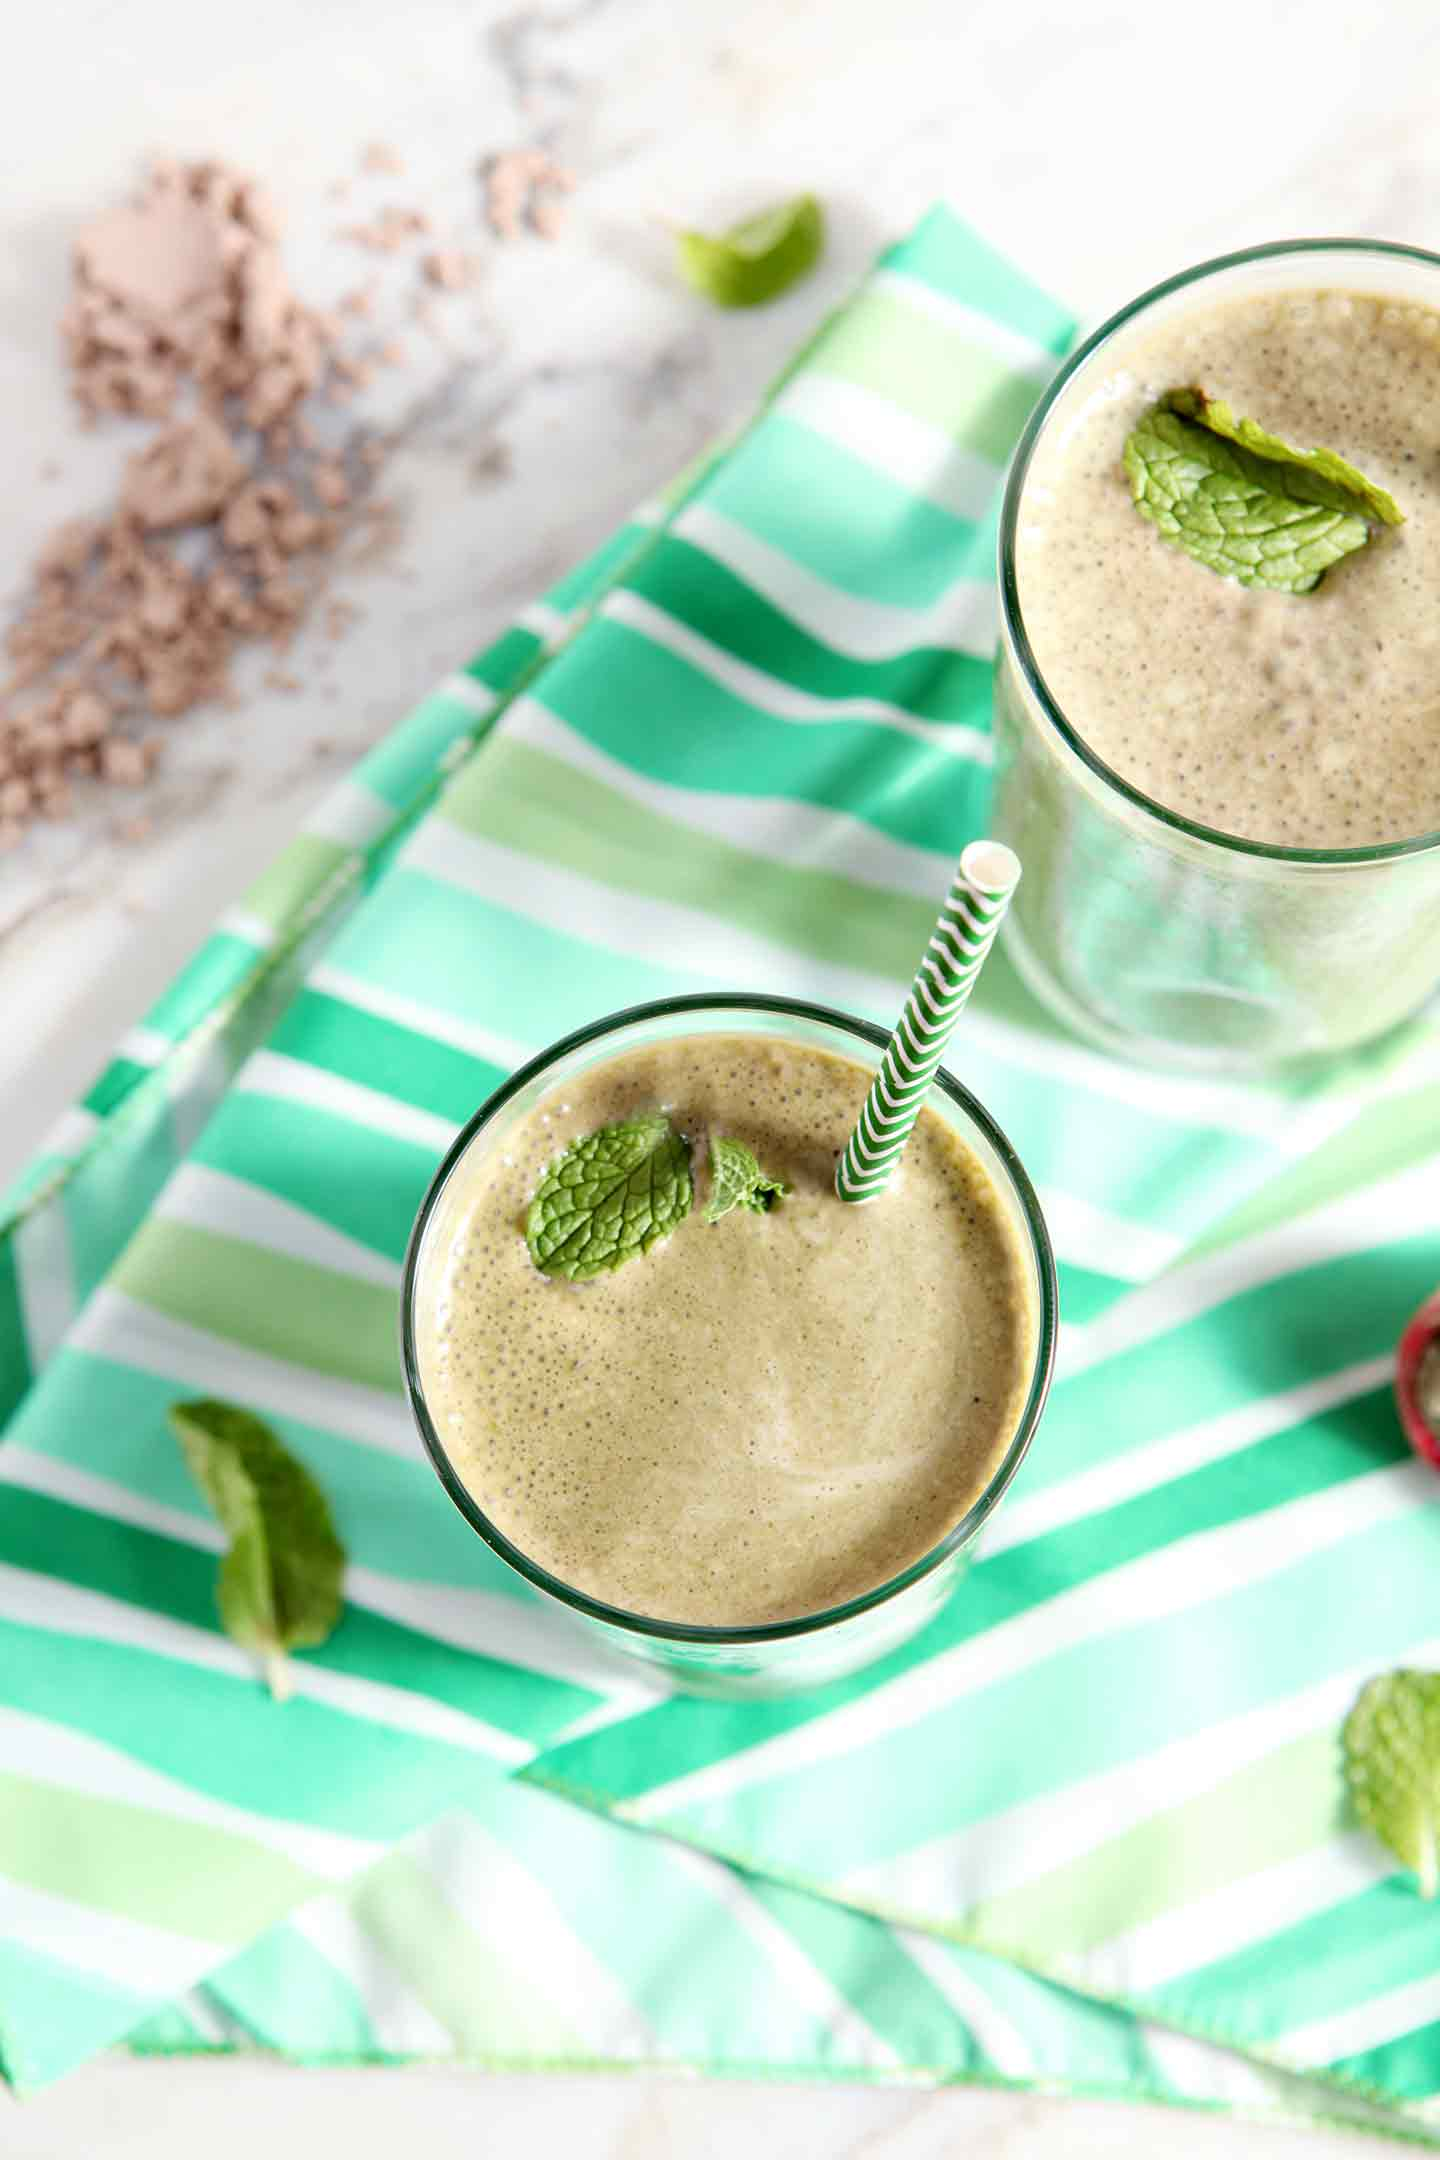 Mint and chocolate together are ALWAYS a good idea... especially for breakfast! Start your morning with a delightfully minty Vegan Thin Mint Smoothie.